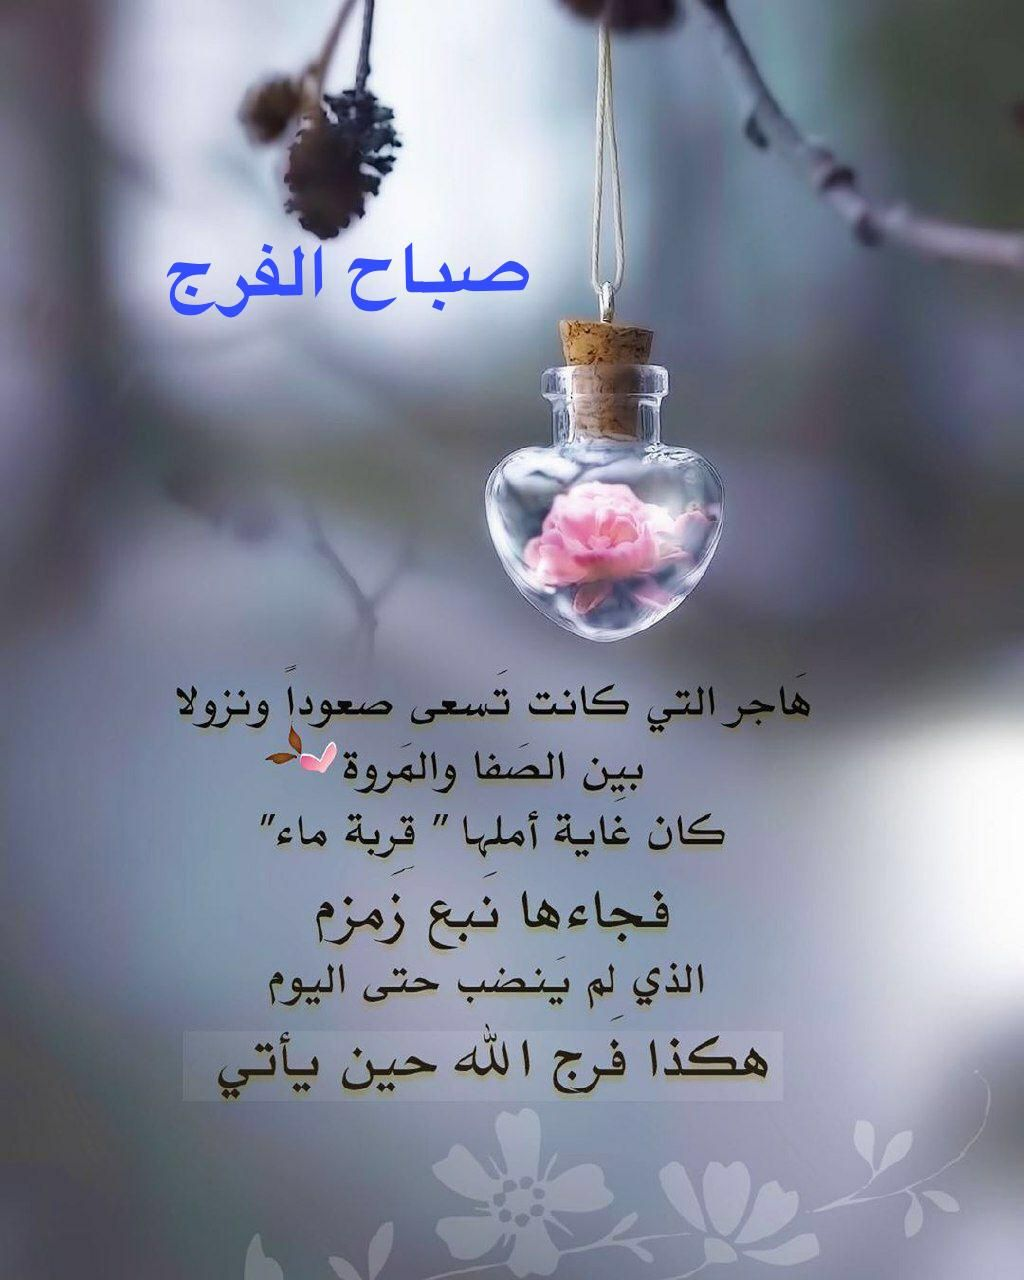 Pin By Abomohammad On تحيتهم فيها سلام وصباح ومساء In 2020 Life Lesson Quotes Wisdom Quotes Life Sweet Words